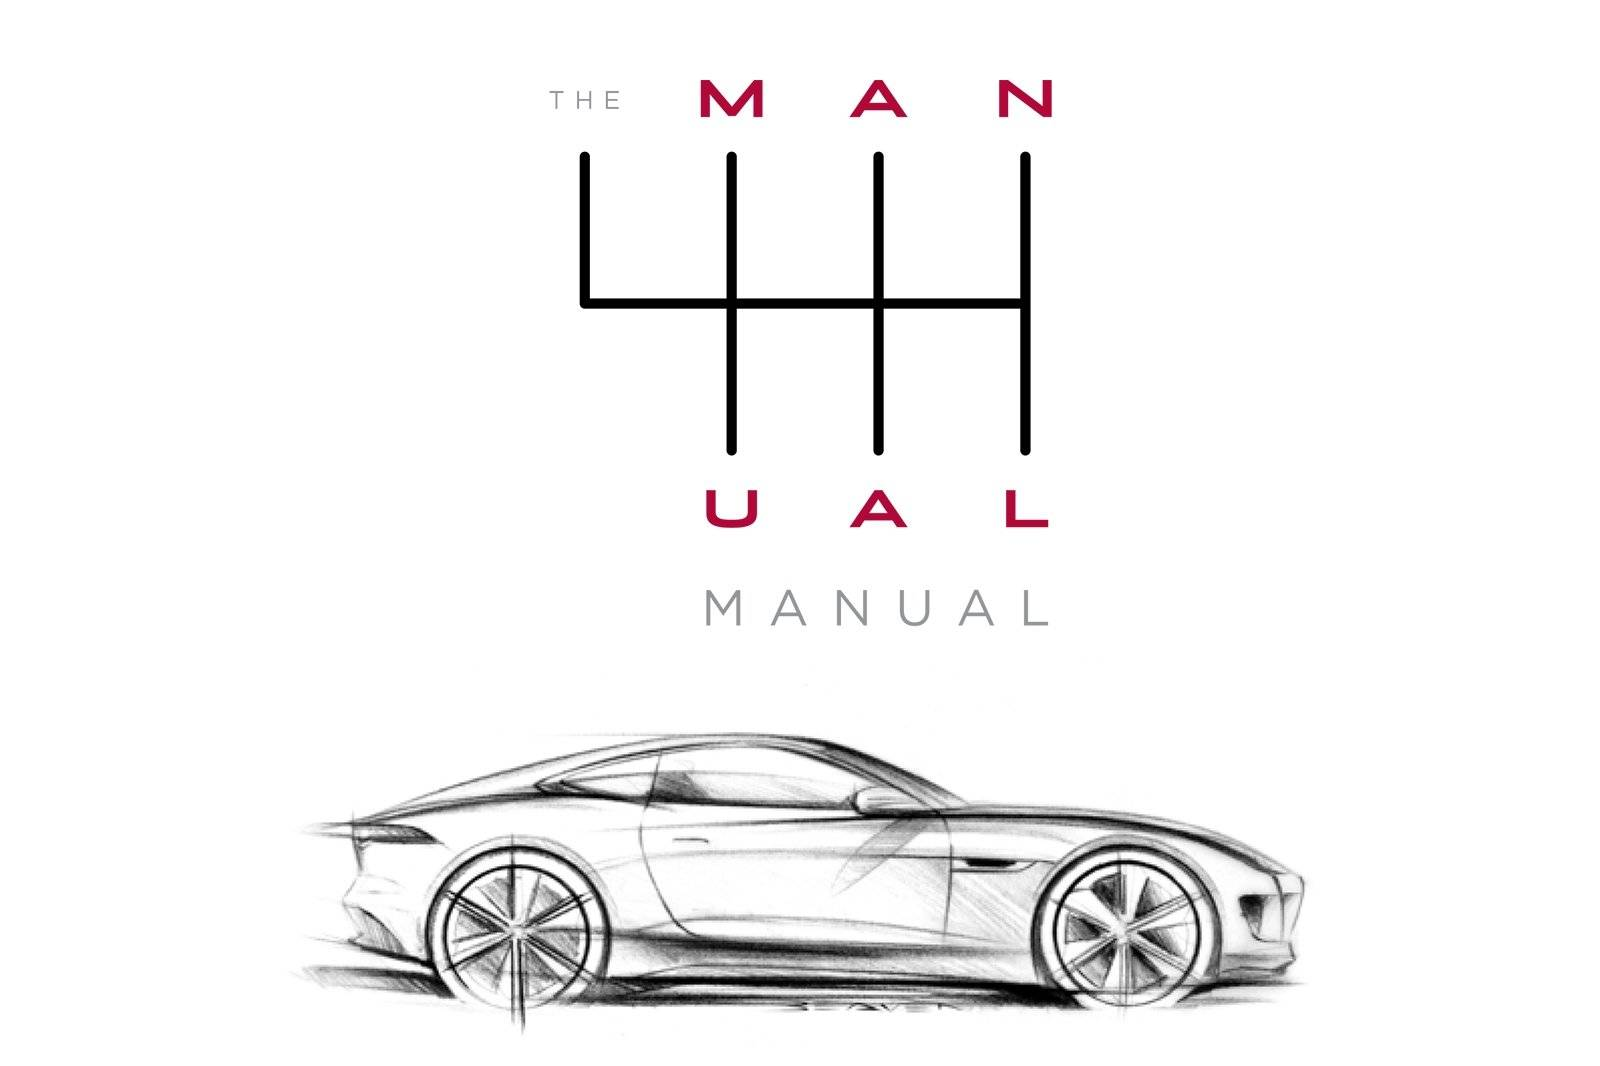 Jaguar manual-manual / Fotogalleries